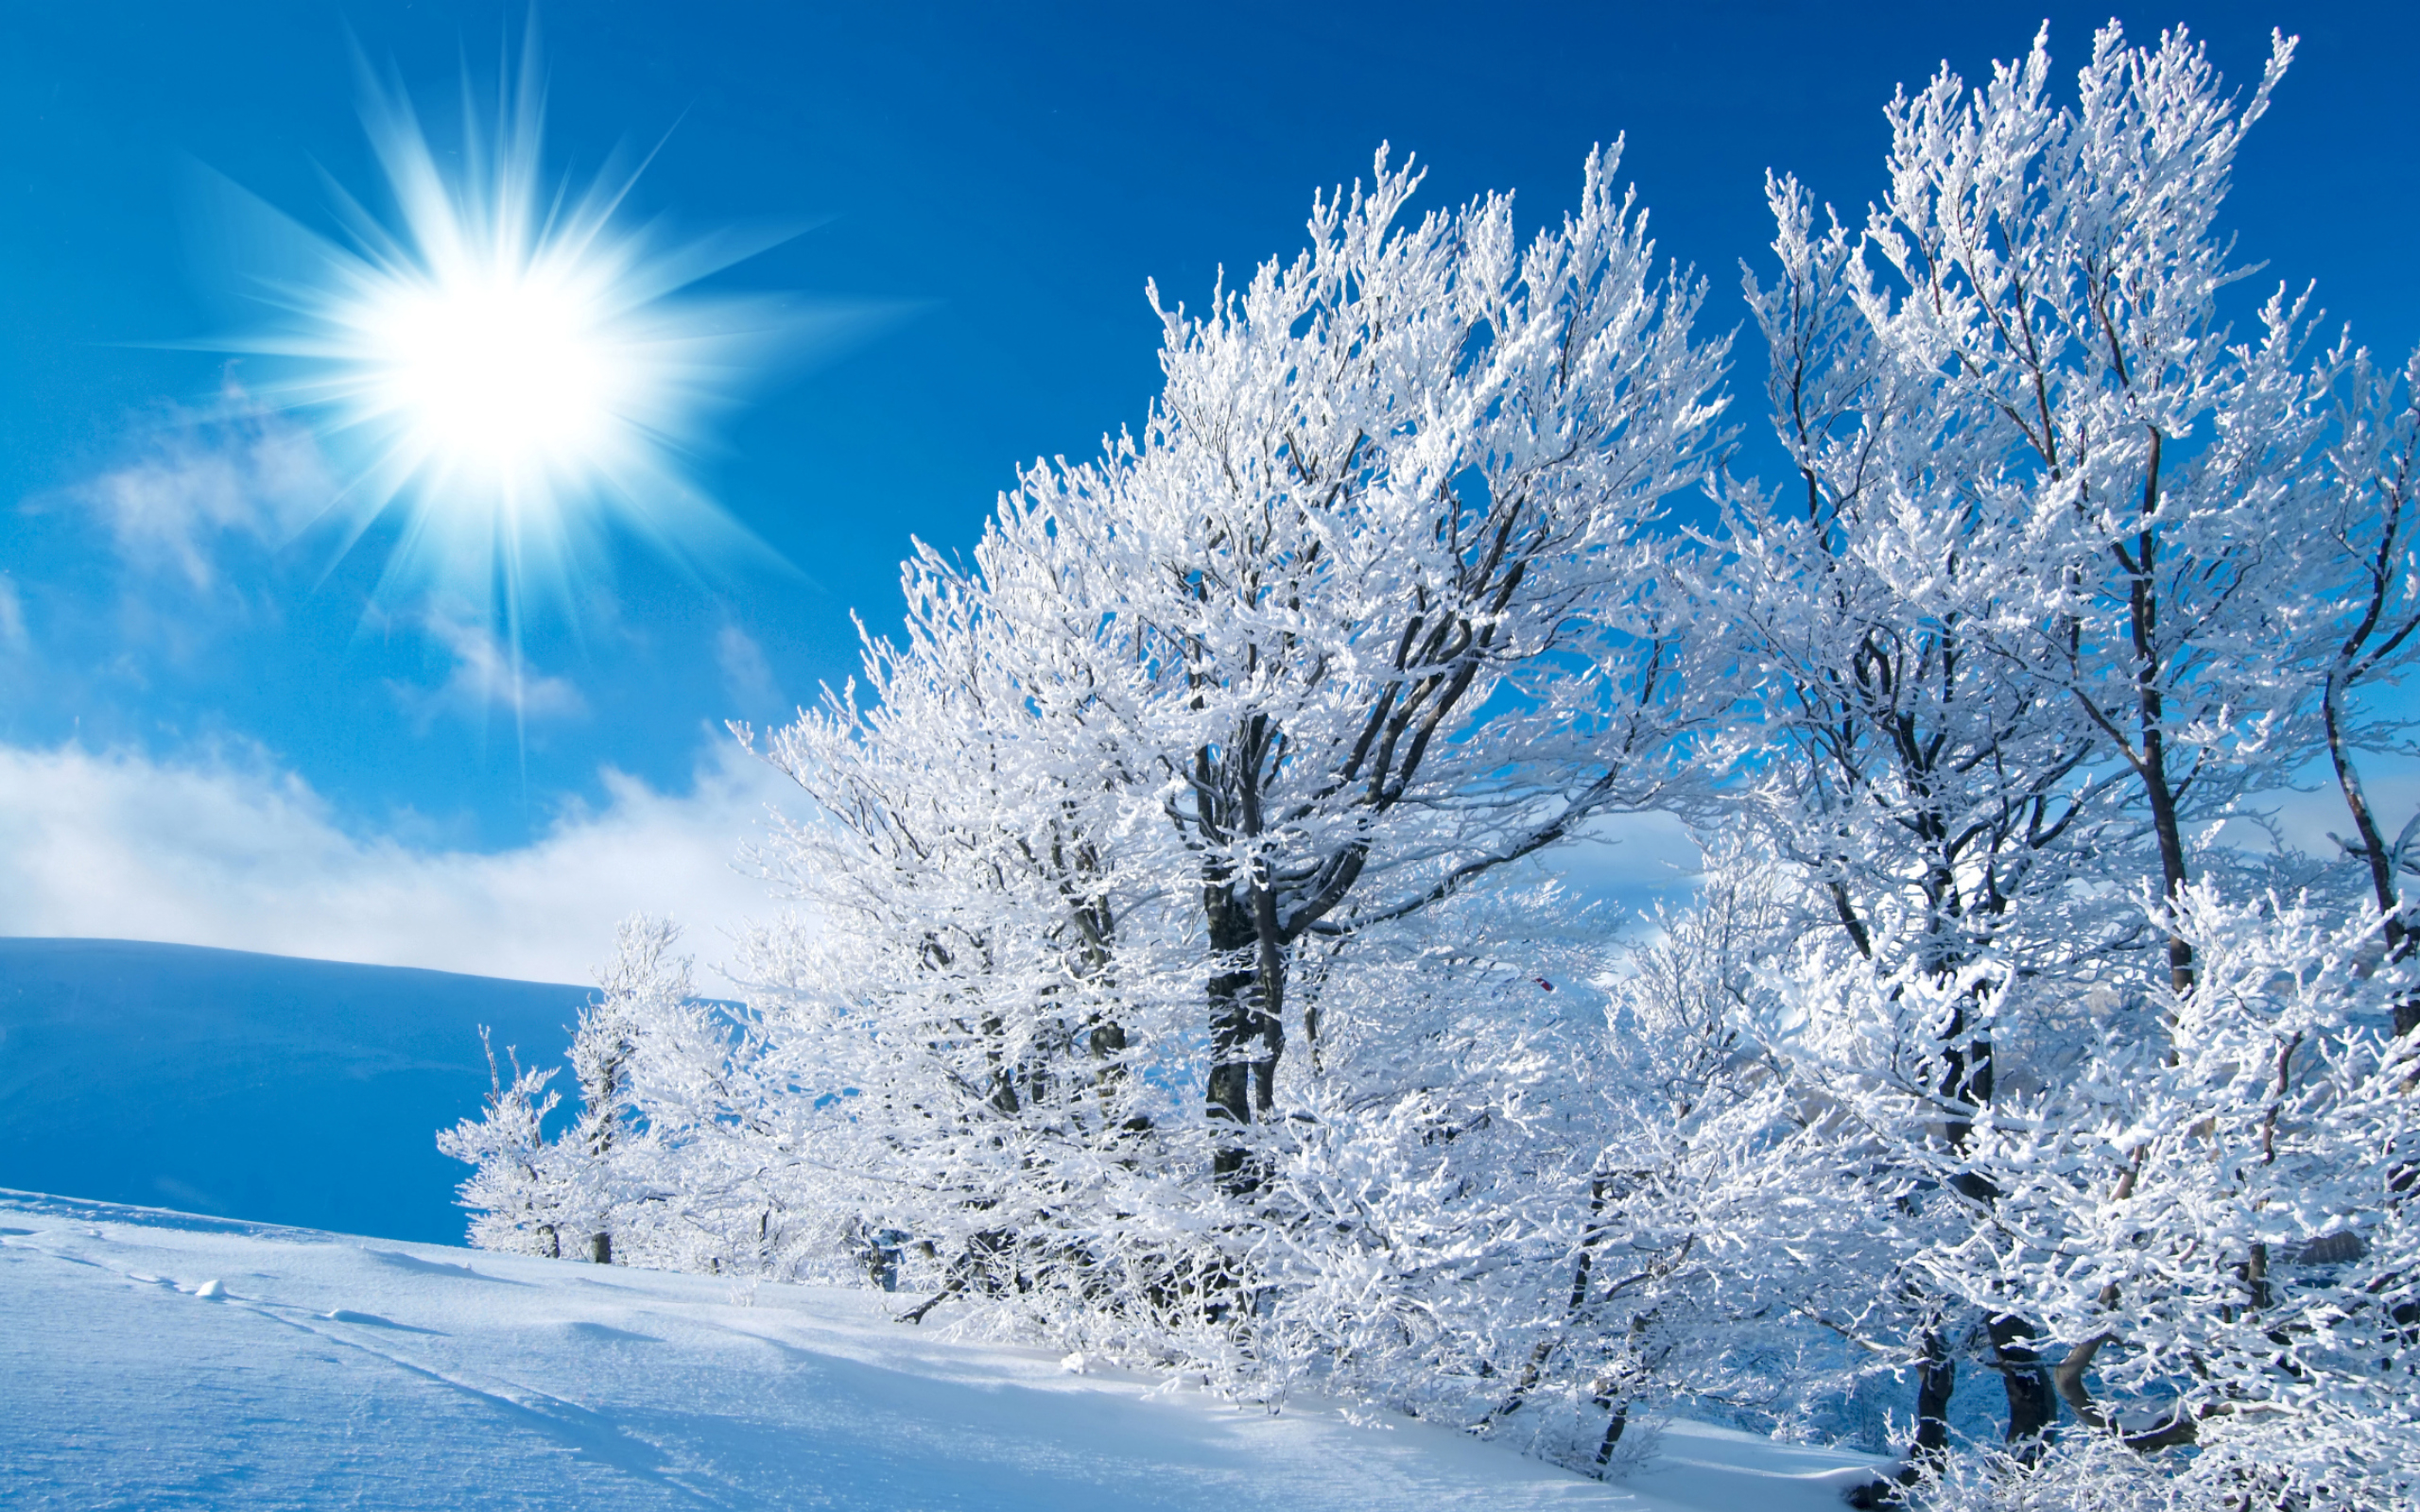 Winter Wallpaper High Definition Winter Sun Wallpaper High Definition High Quality Widescreen